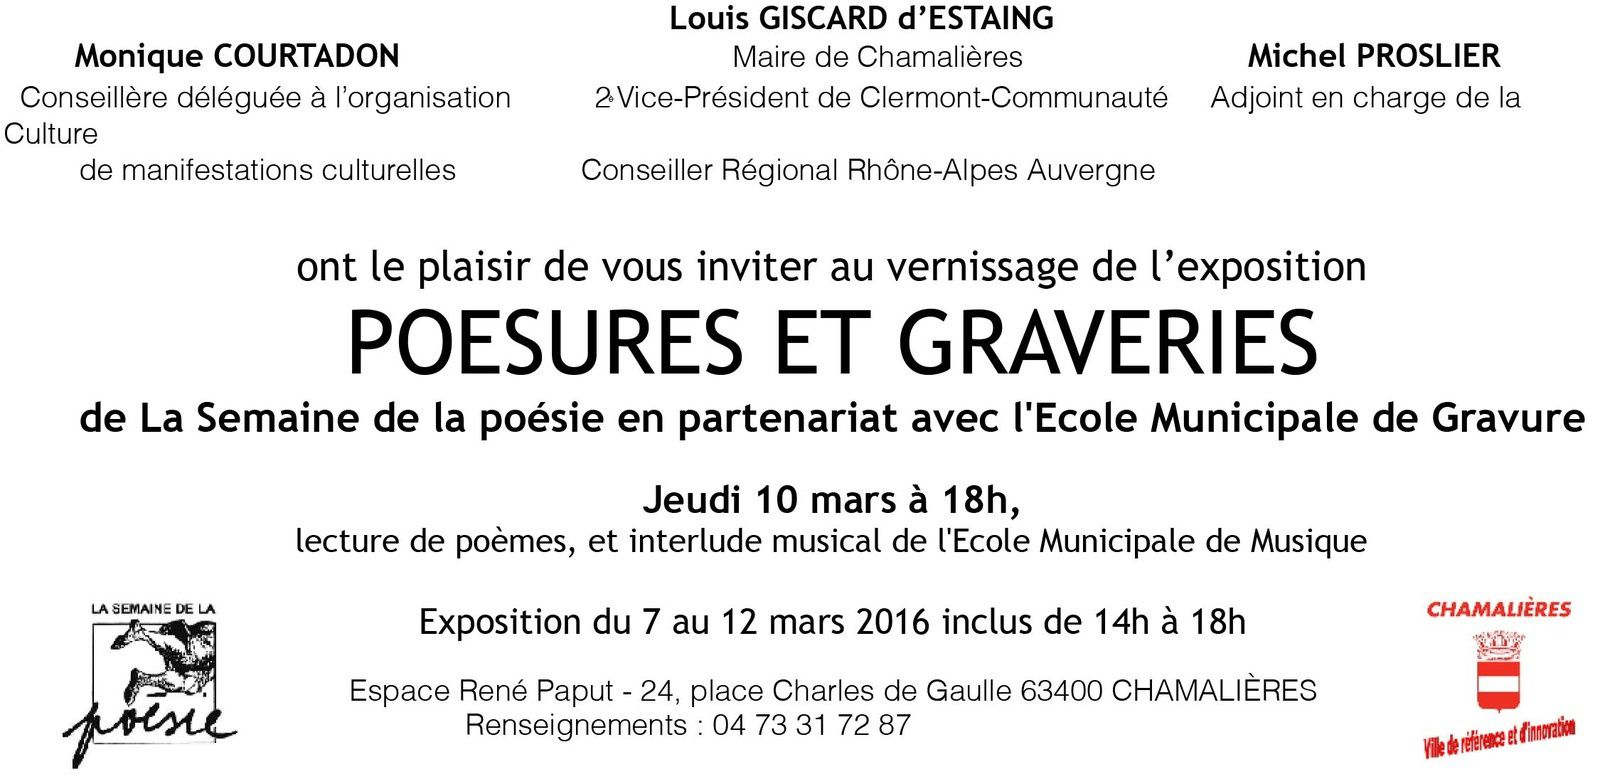 Invitation au vernissage de l'exposition Poésures et Graveries